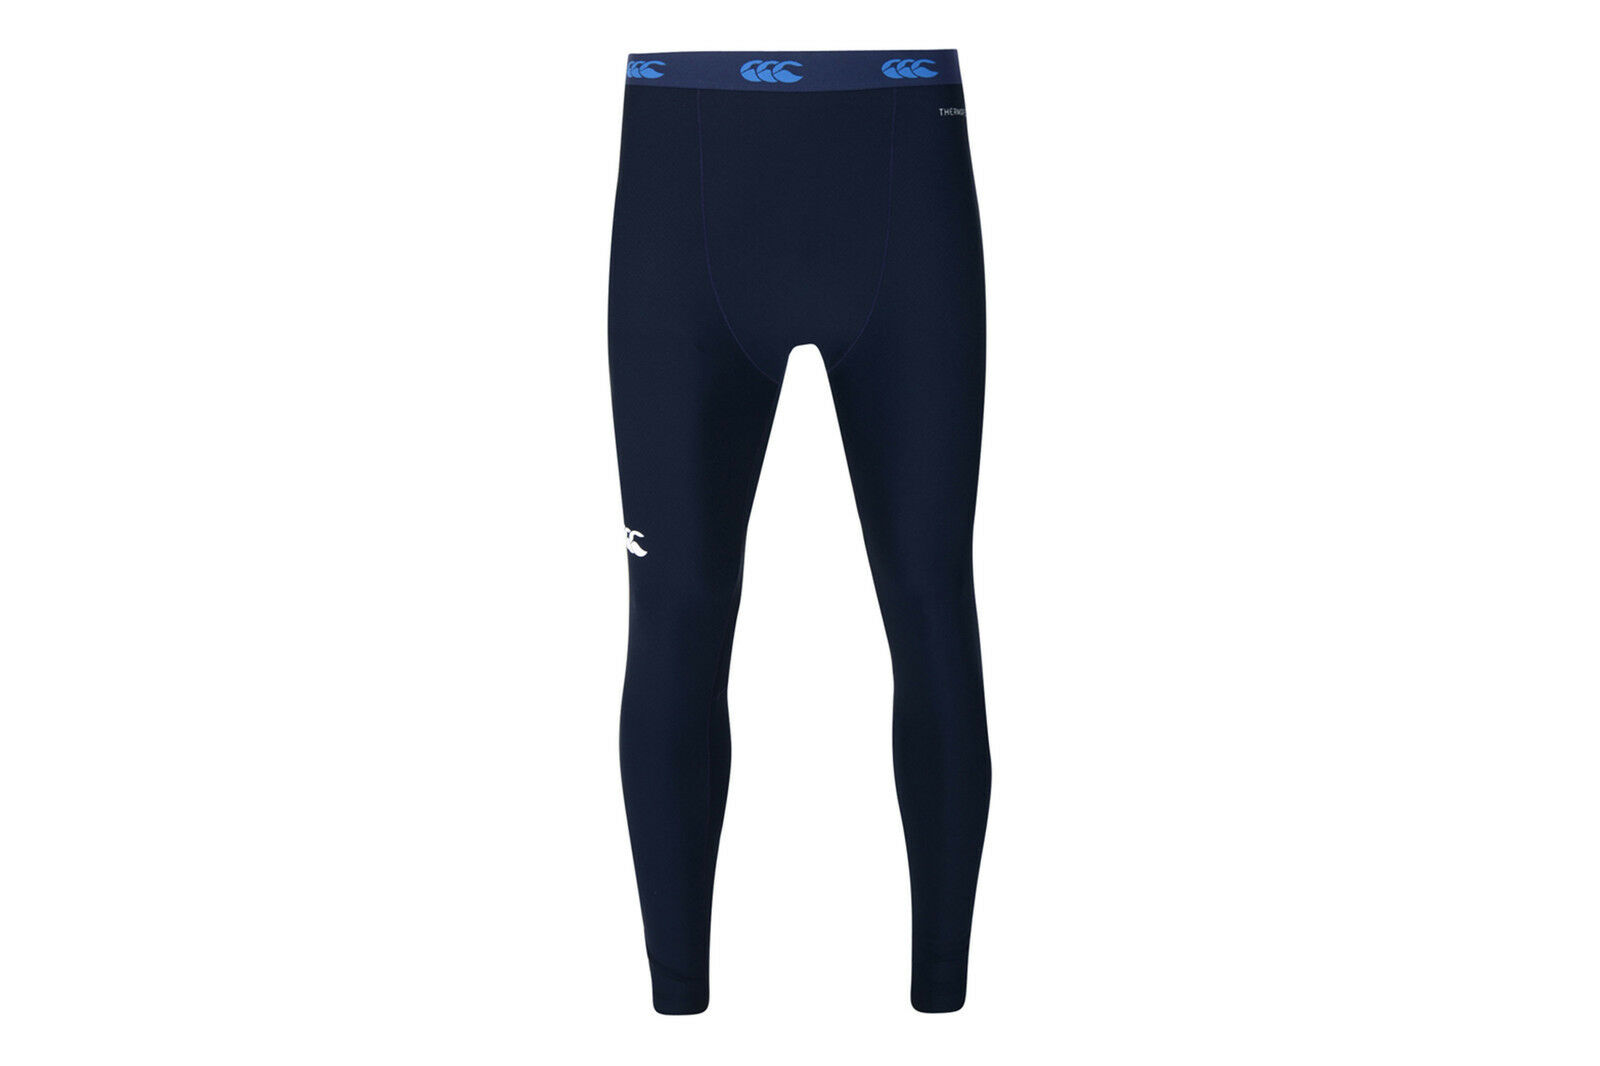 Canterbury Mens Baselayer Thermoreg Leggings Pants Training Sports